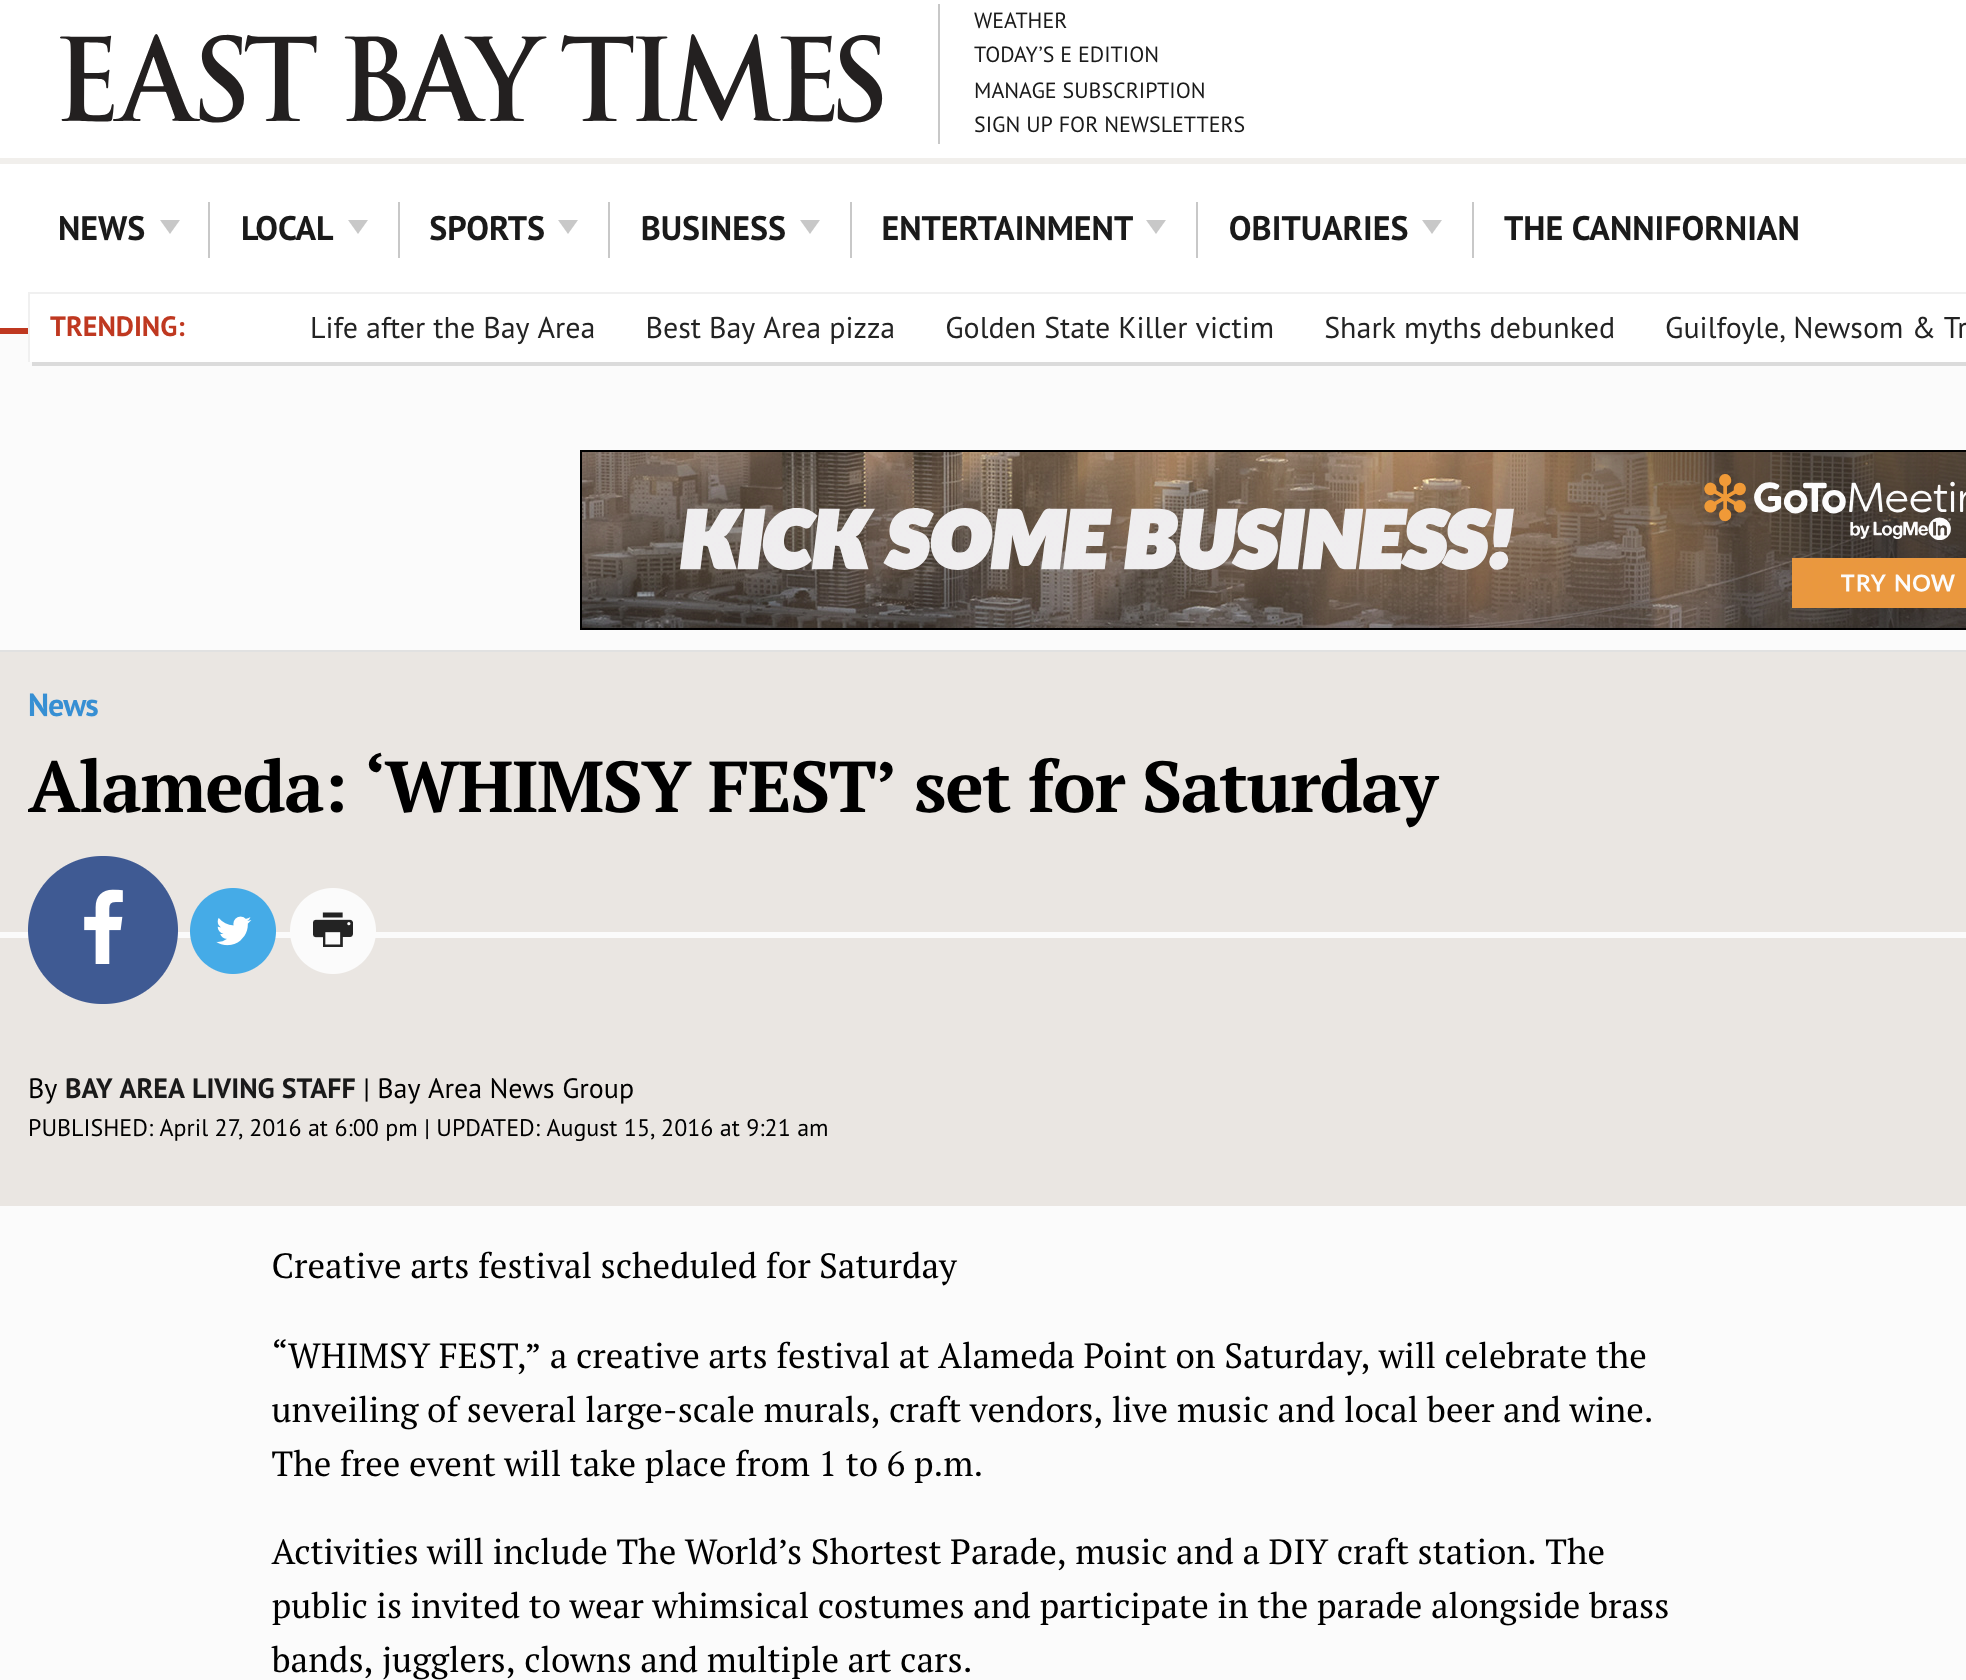 """Whimsy Fest Love - """"WHIMSY FEST,"""" a creative arts festival at Alameda Point on Saturday, will celebrate the unveiling of several large-scale murals, craft vendors, live music and local beer and wine. The free event will take place from 1 to 6 p.m.Activities will include The World's Shortest Parade, music and a DIY craft station. The public is invited to wear whimsical costumes and participate in the parade alongside brass bands, jugglers, clowns and multiple art cars.Food and beverage purveyors will include Kenny's Heart and Soul, Fist of Flour, Gotta Love Kettle Corn, and Lucky 13 will be pouring local Alameda beer and wine."""